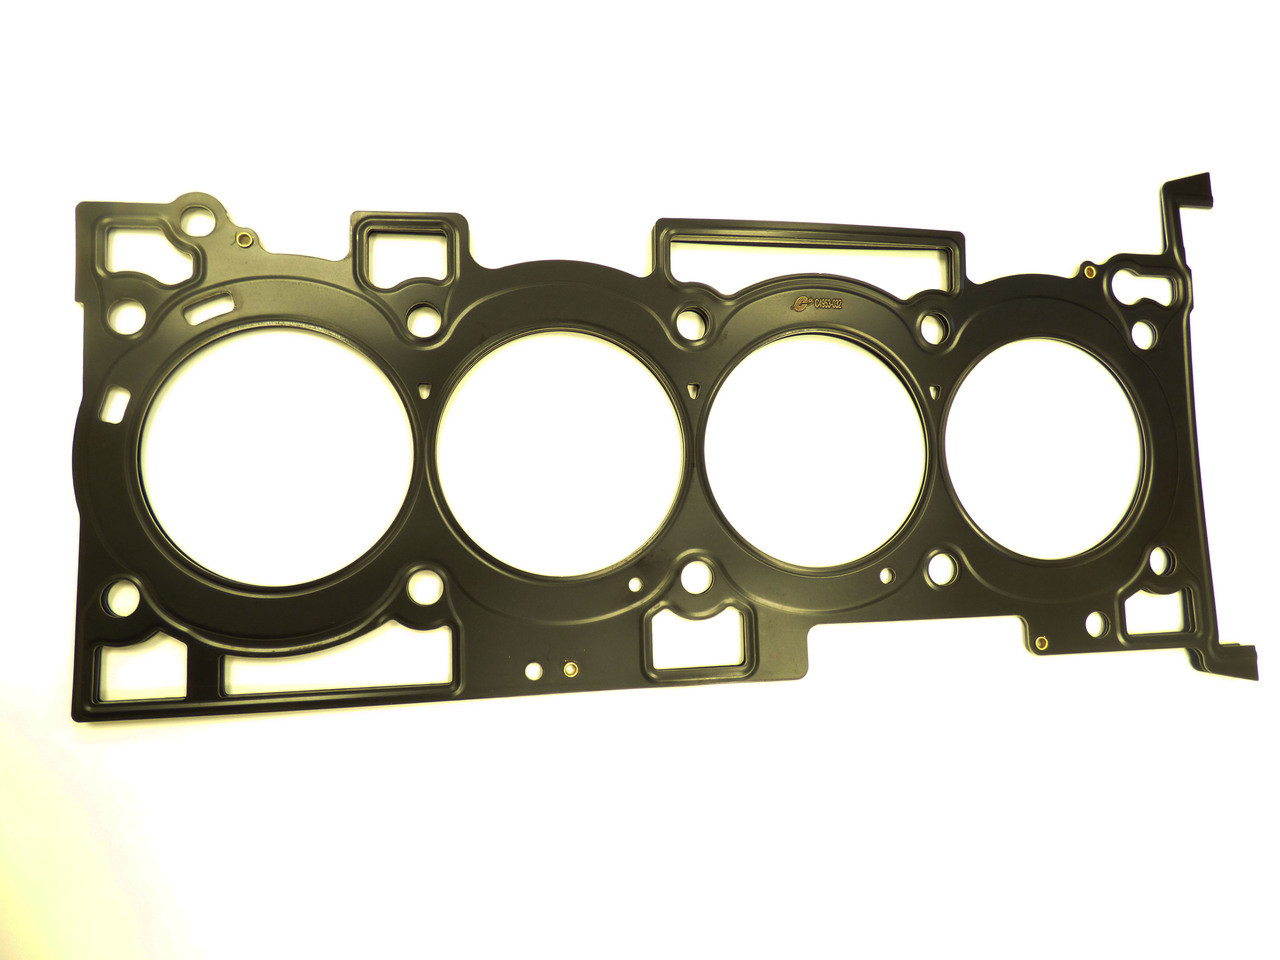 cometic headgasket for genesis coupe bk1 and bk2